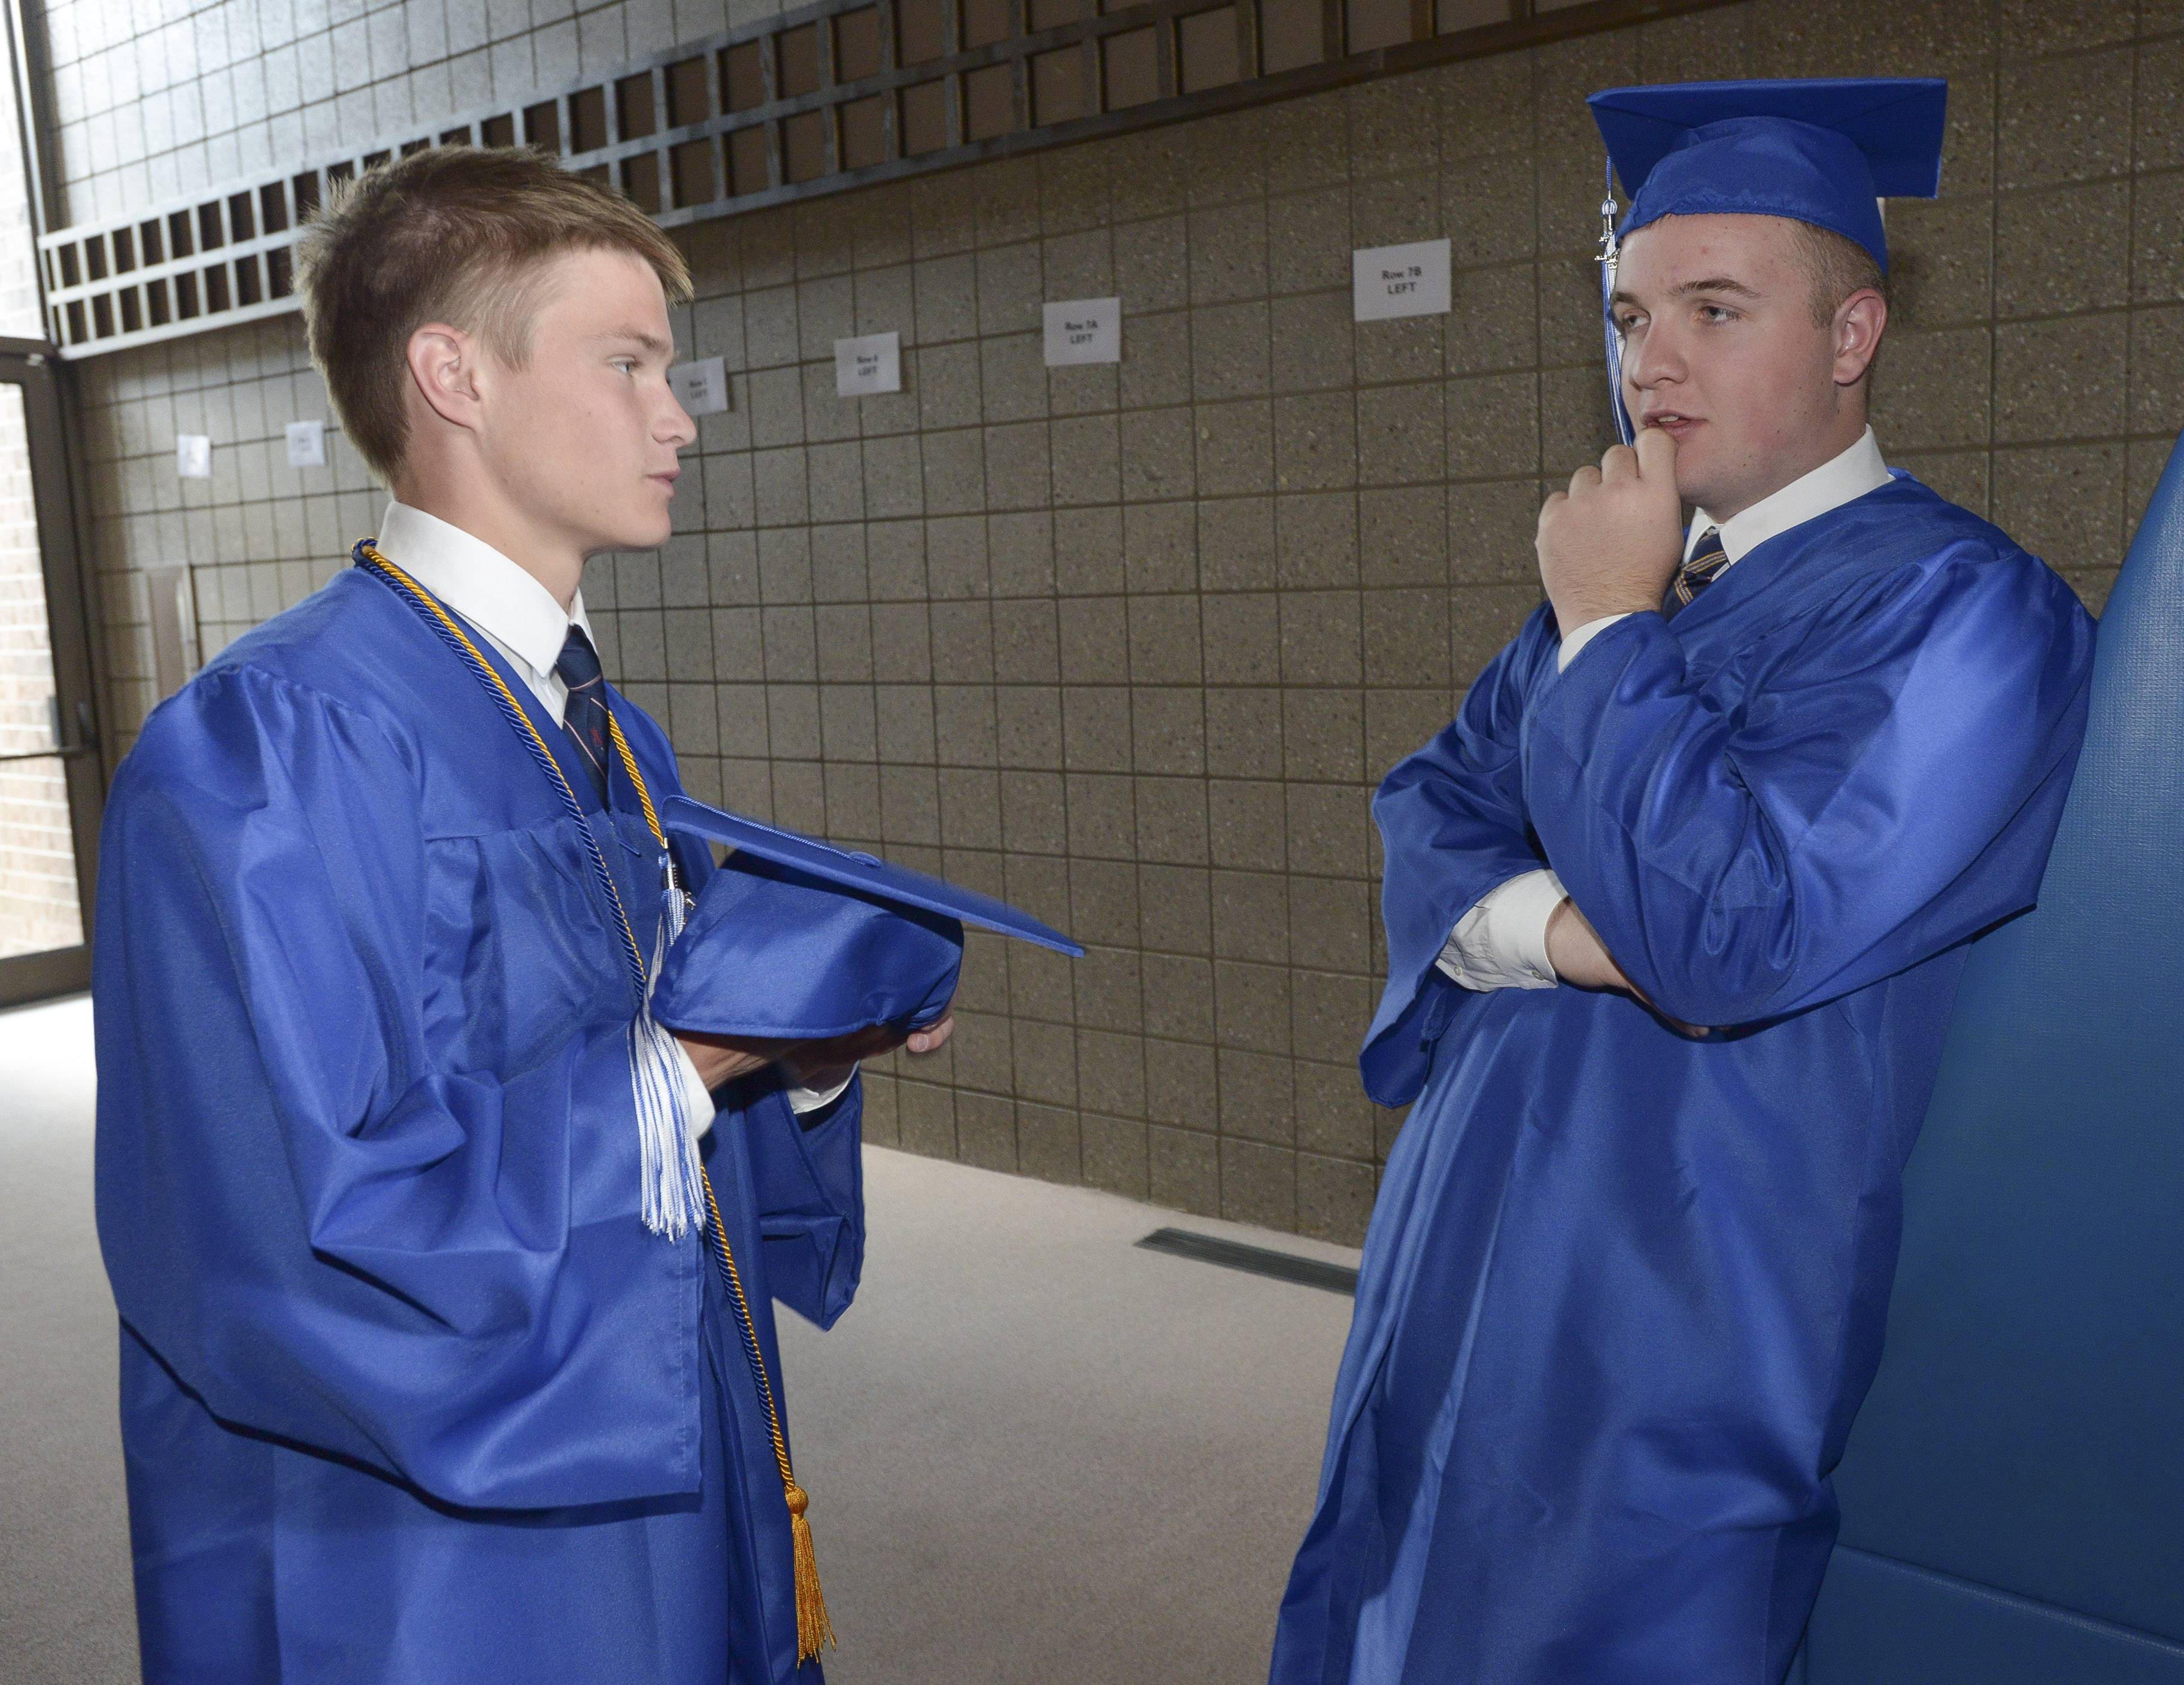 Matt Armbrust and Andrew Oleniczak hang out before the start of the St. Francis High School graduation Sunday, May 18 at St. John Neumann Church in St. Charles